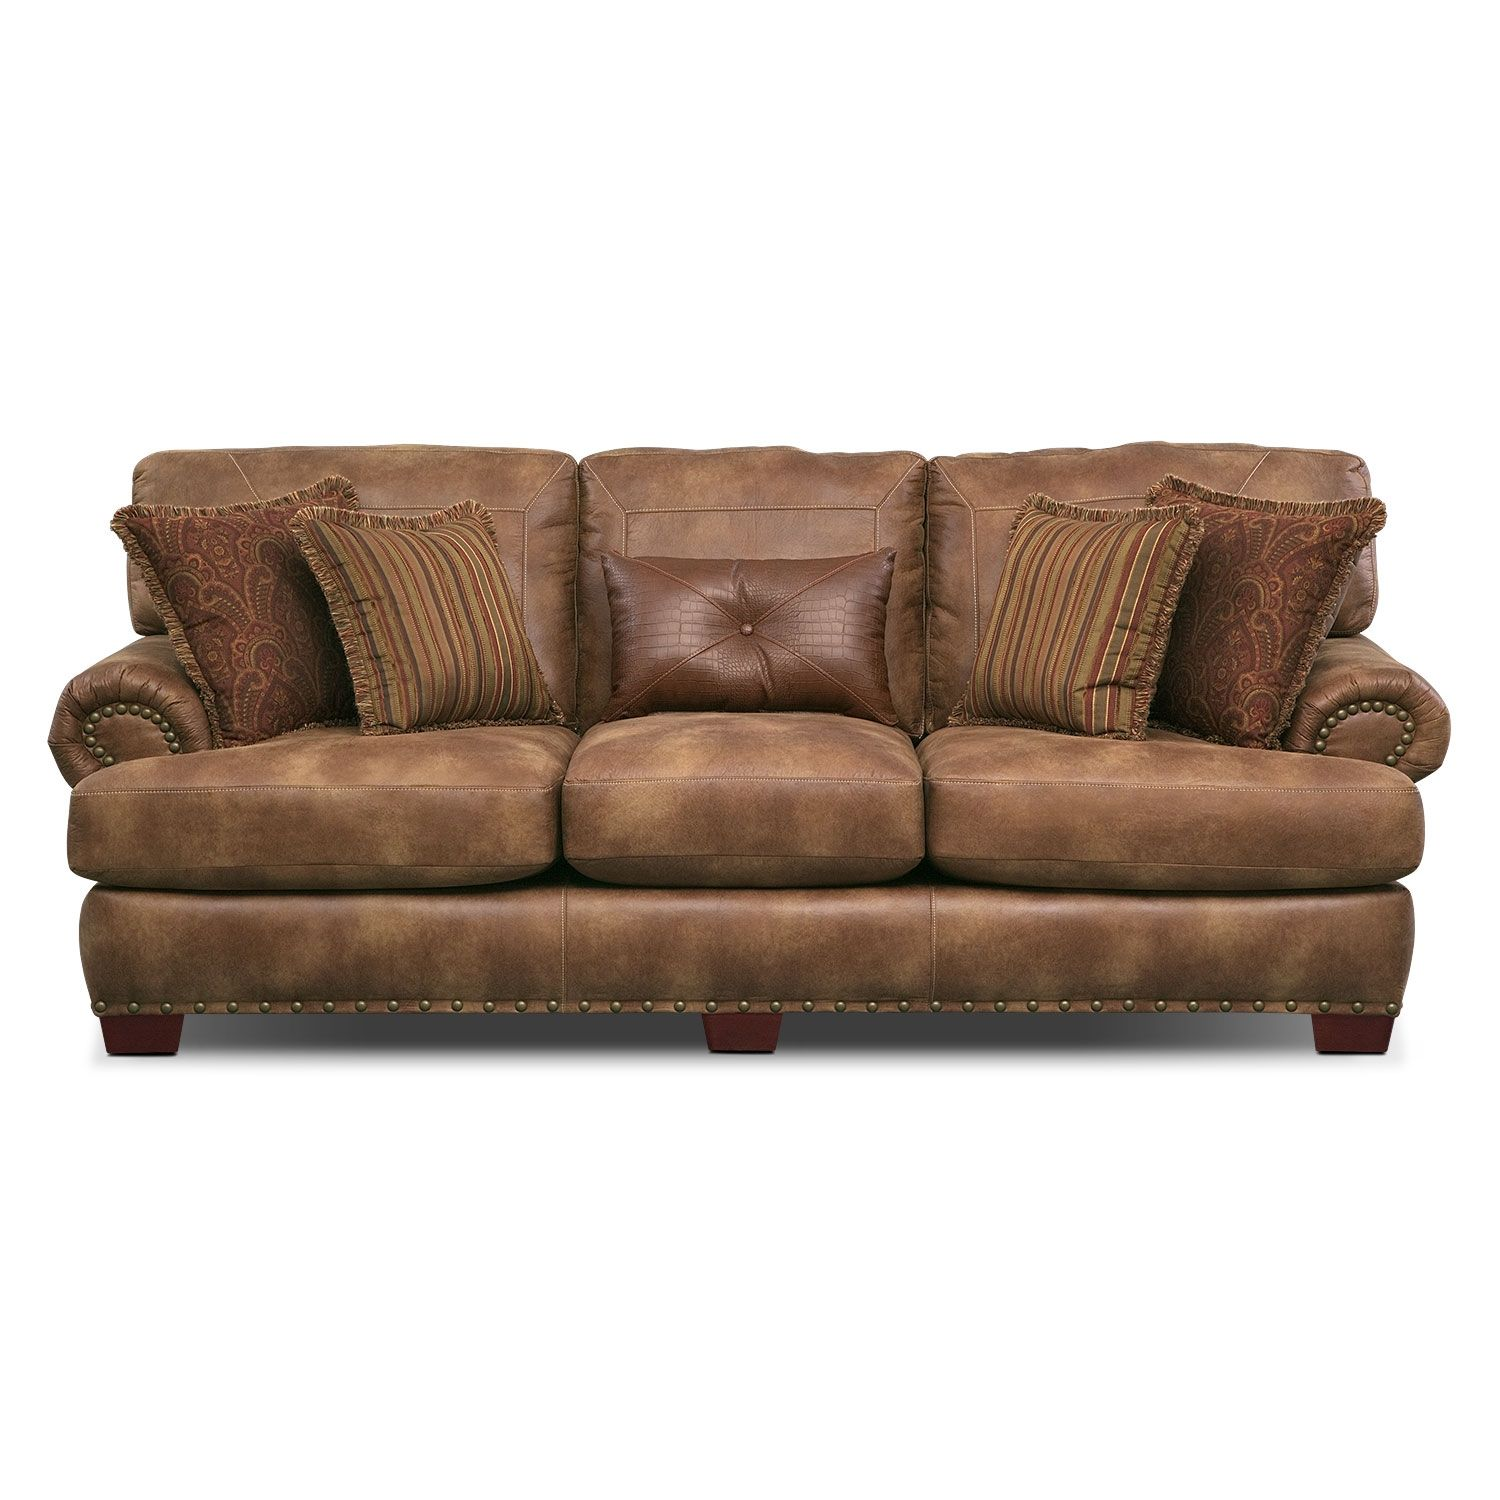 Cognac Factor. Gold-burnished nailhead trim along the ... on Cognac Leather Headboard  id=61657